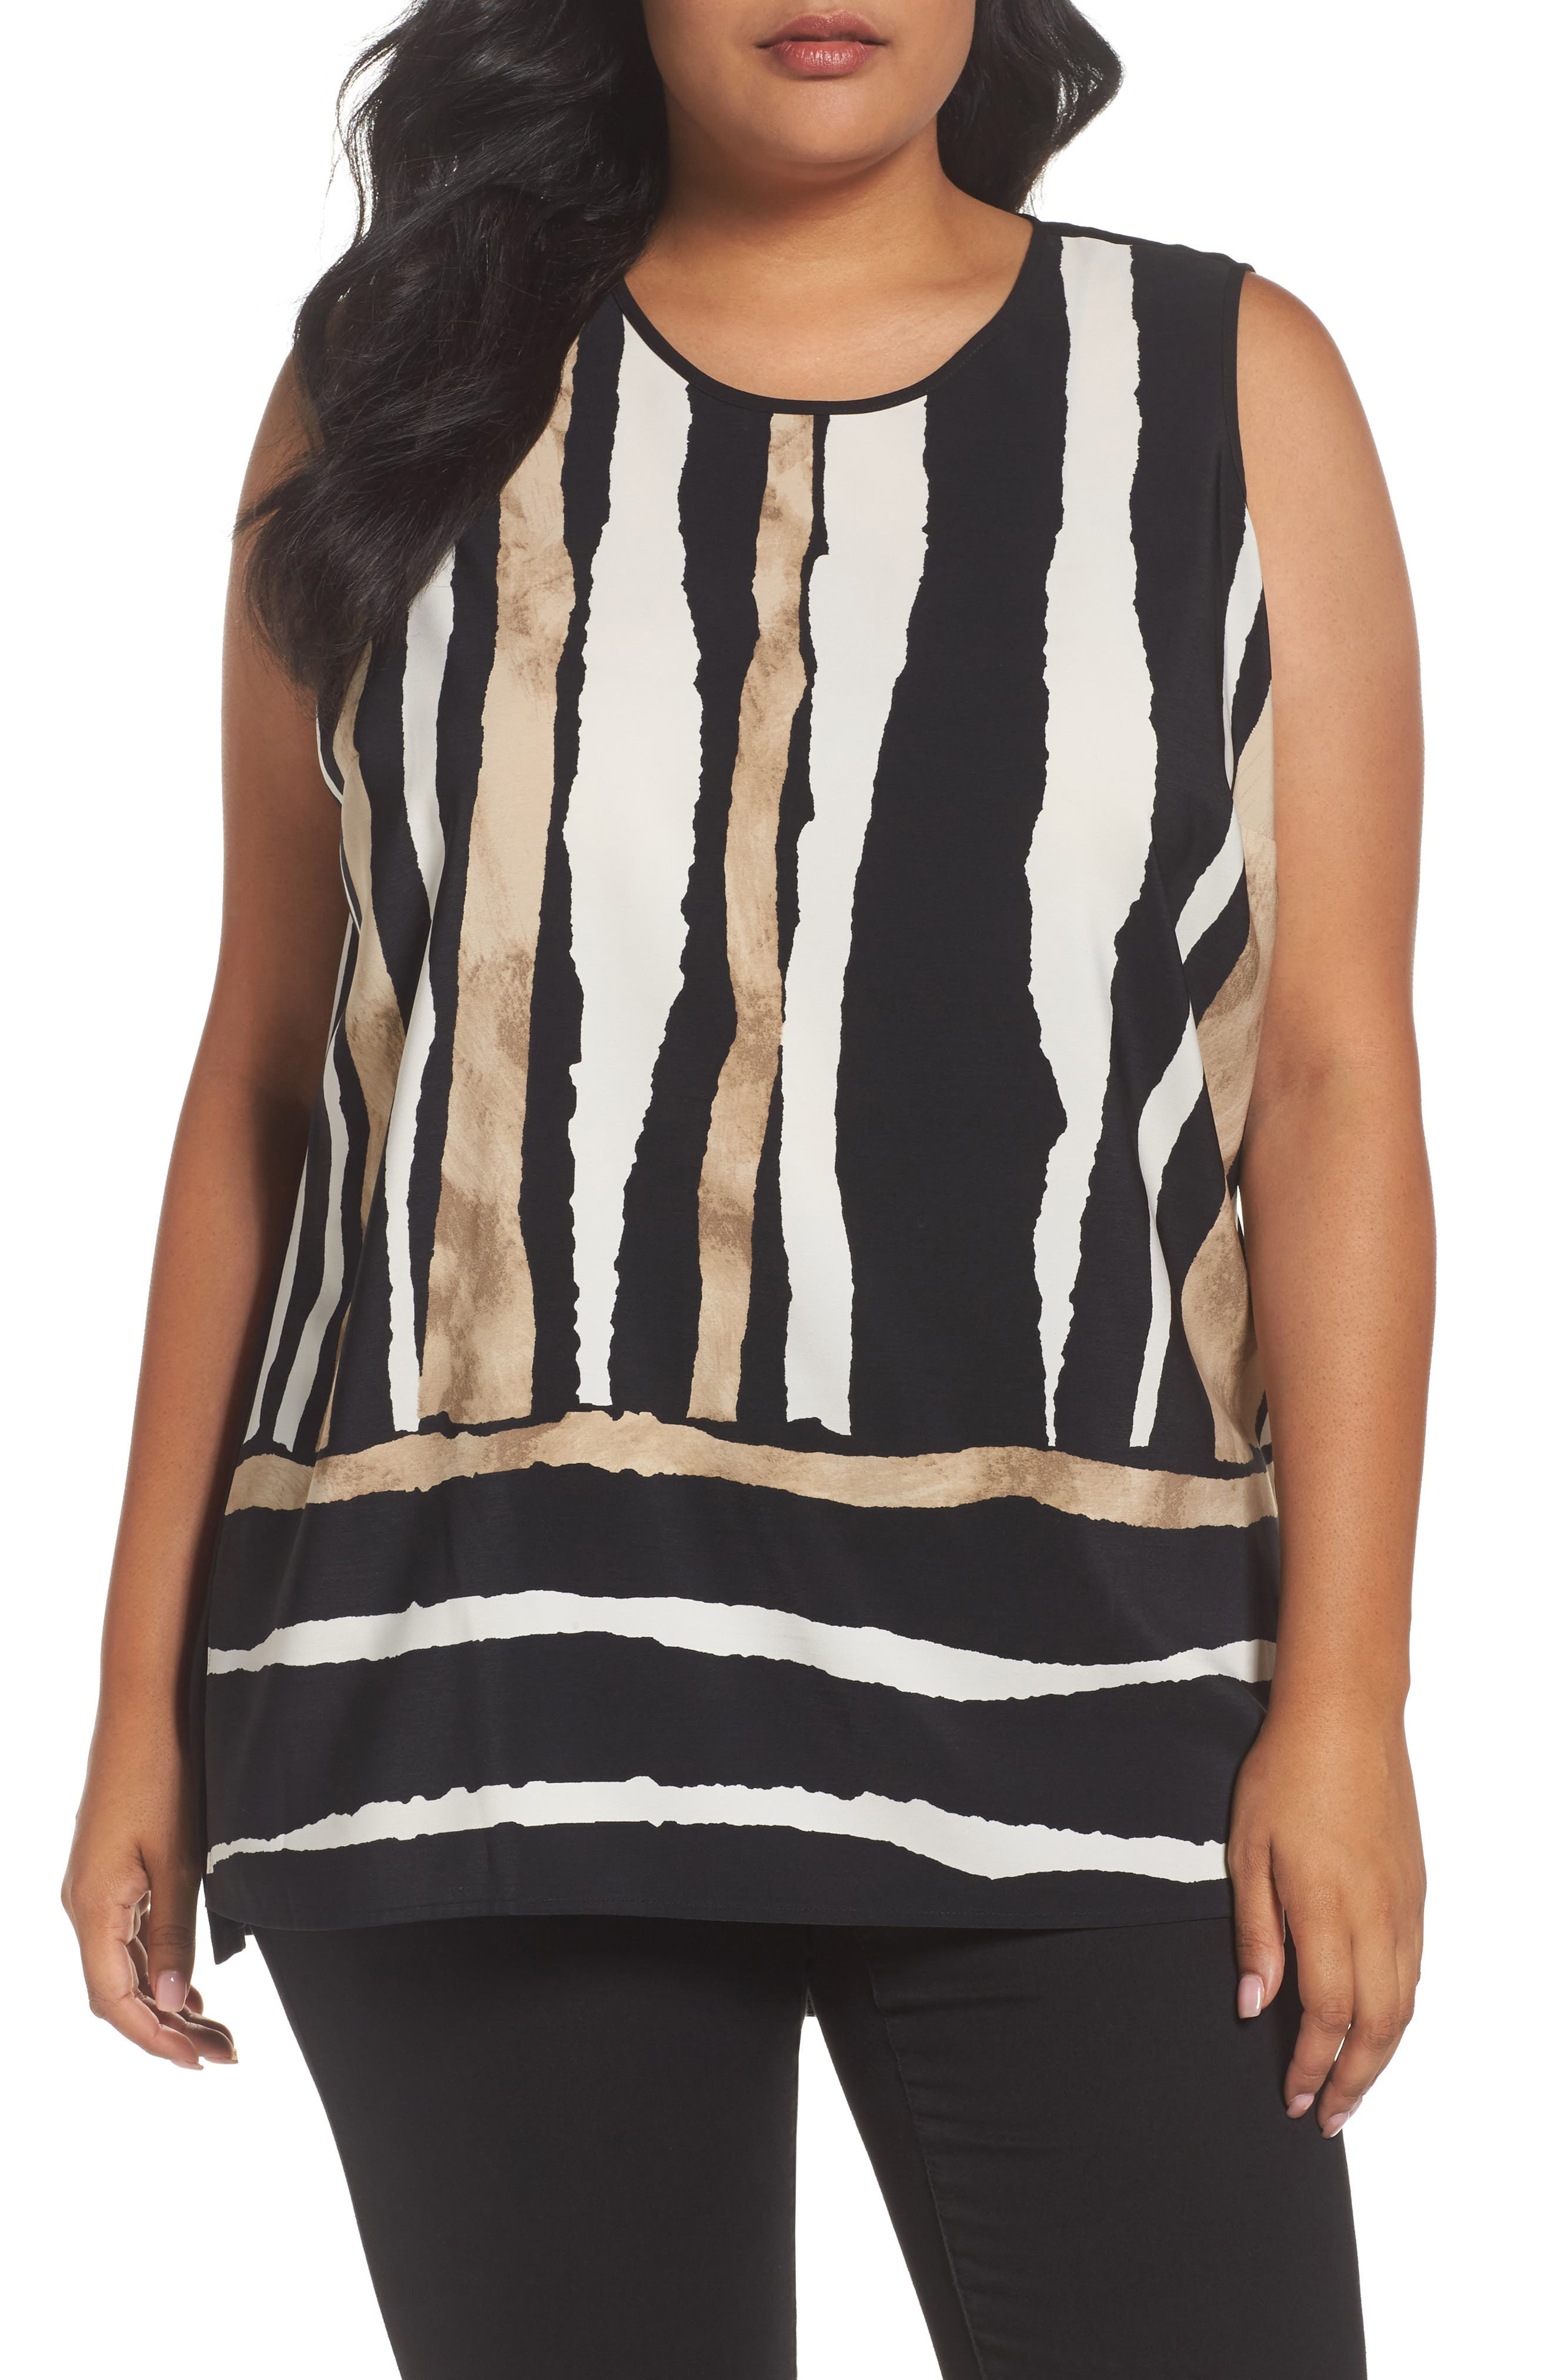 Vince Camuto Linear Terrain Mixed Media Top (Plus Size)